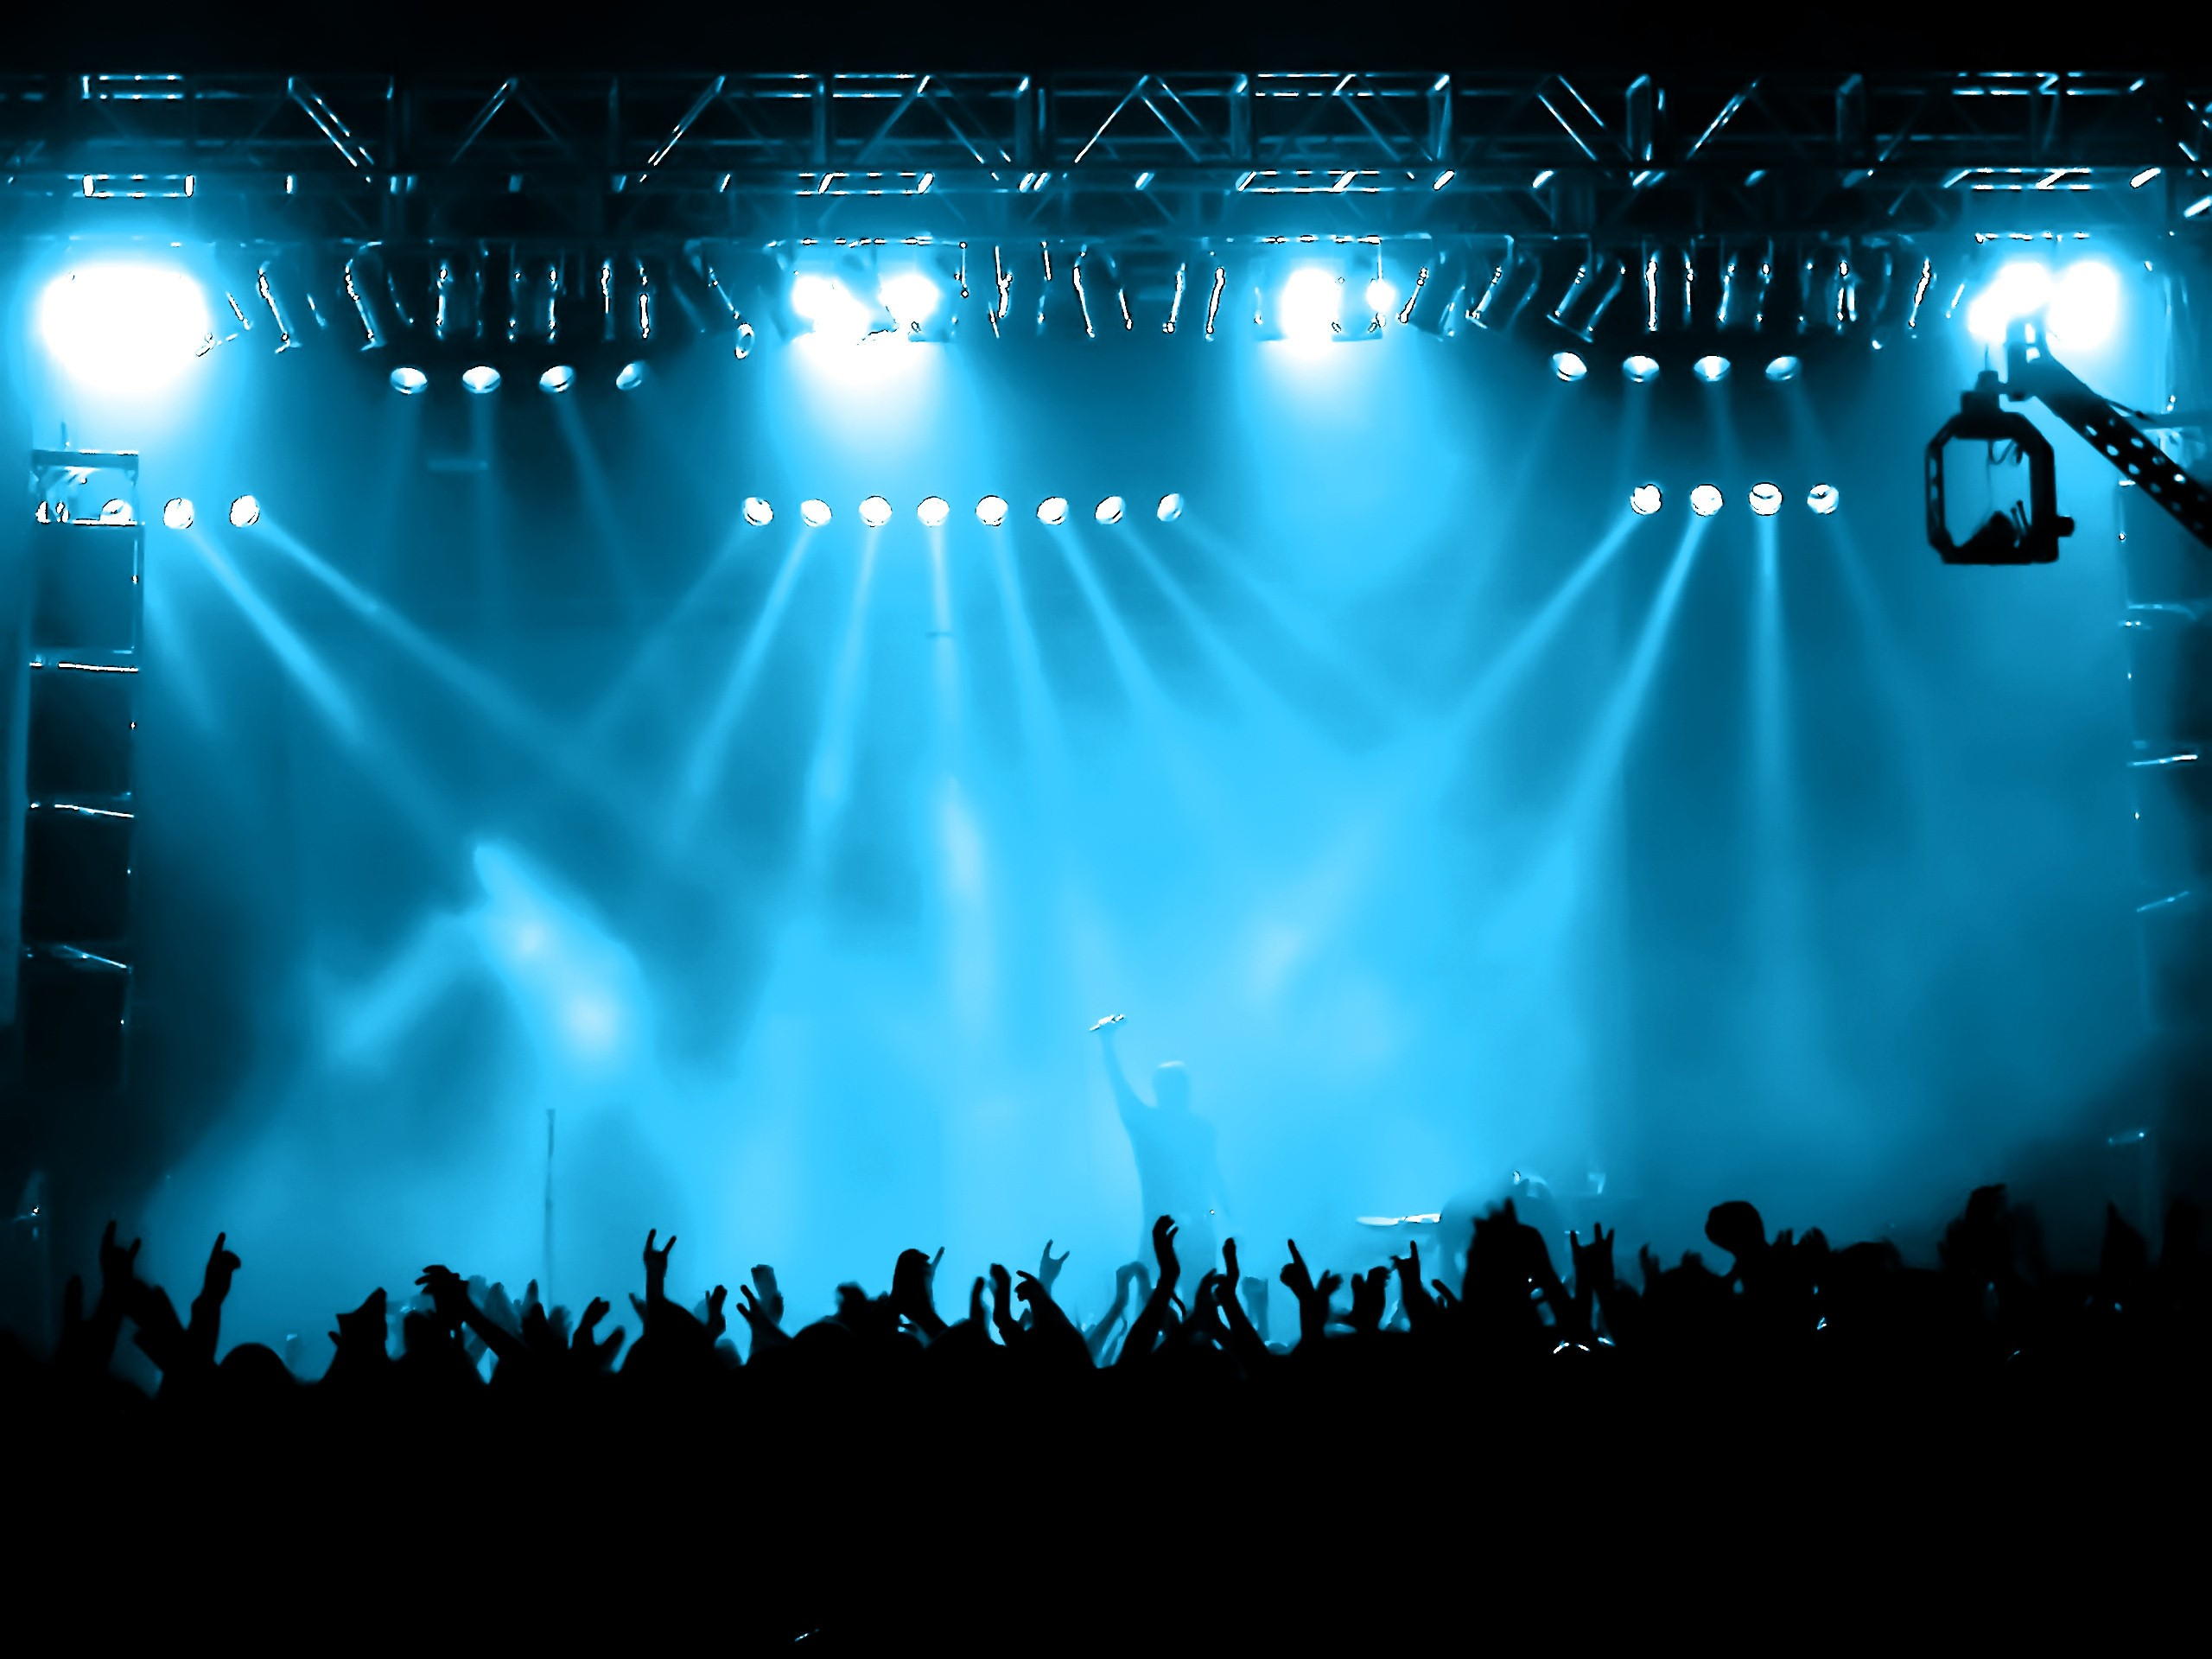 Concert background ·① Download free cool full HD wallpapers for ... for Concert Stage Lights Background  53kxo